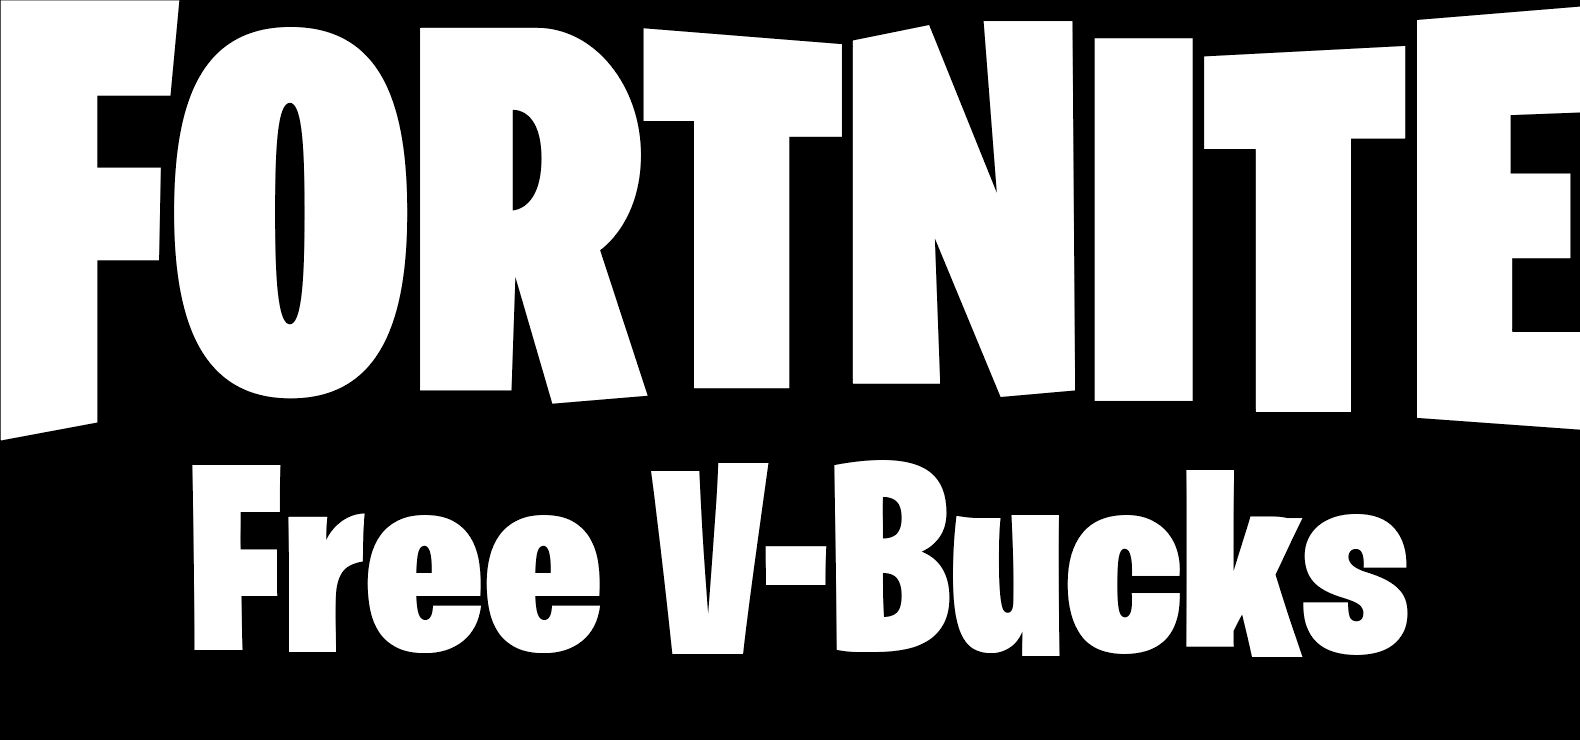 Freevbucks Co free fortnite v-bucks